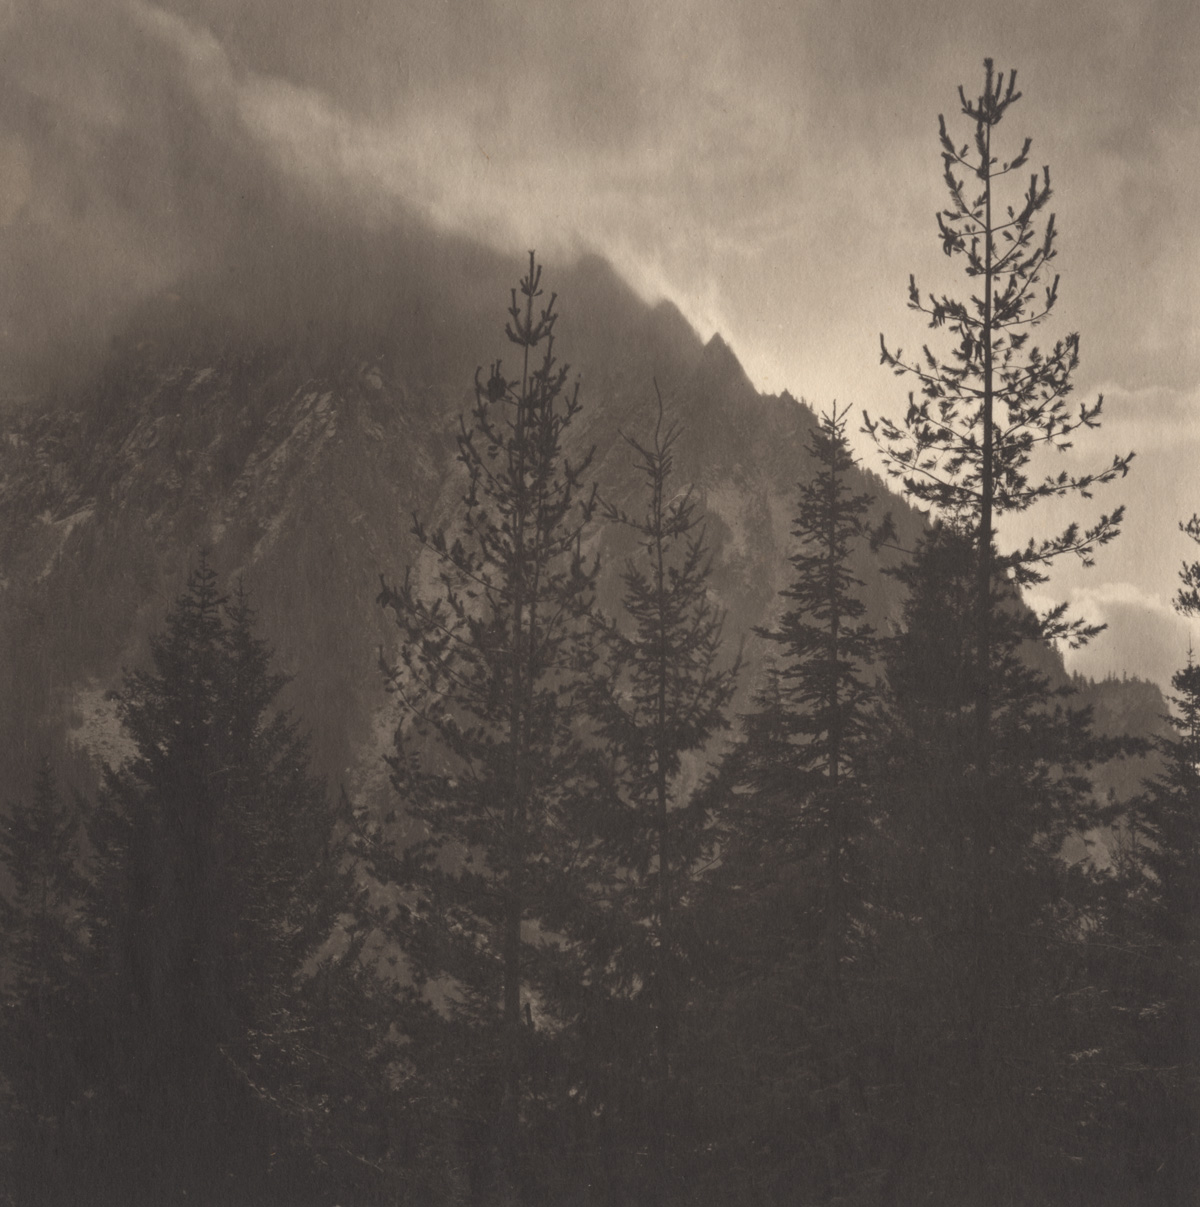 Takeshi Shikama Silent Respiration of Forests - Pacific Northwest: Mt. Rainer #4